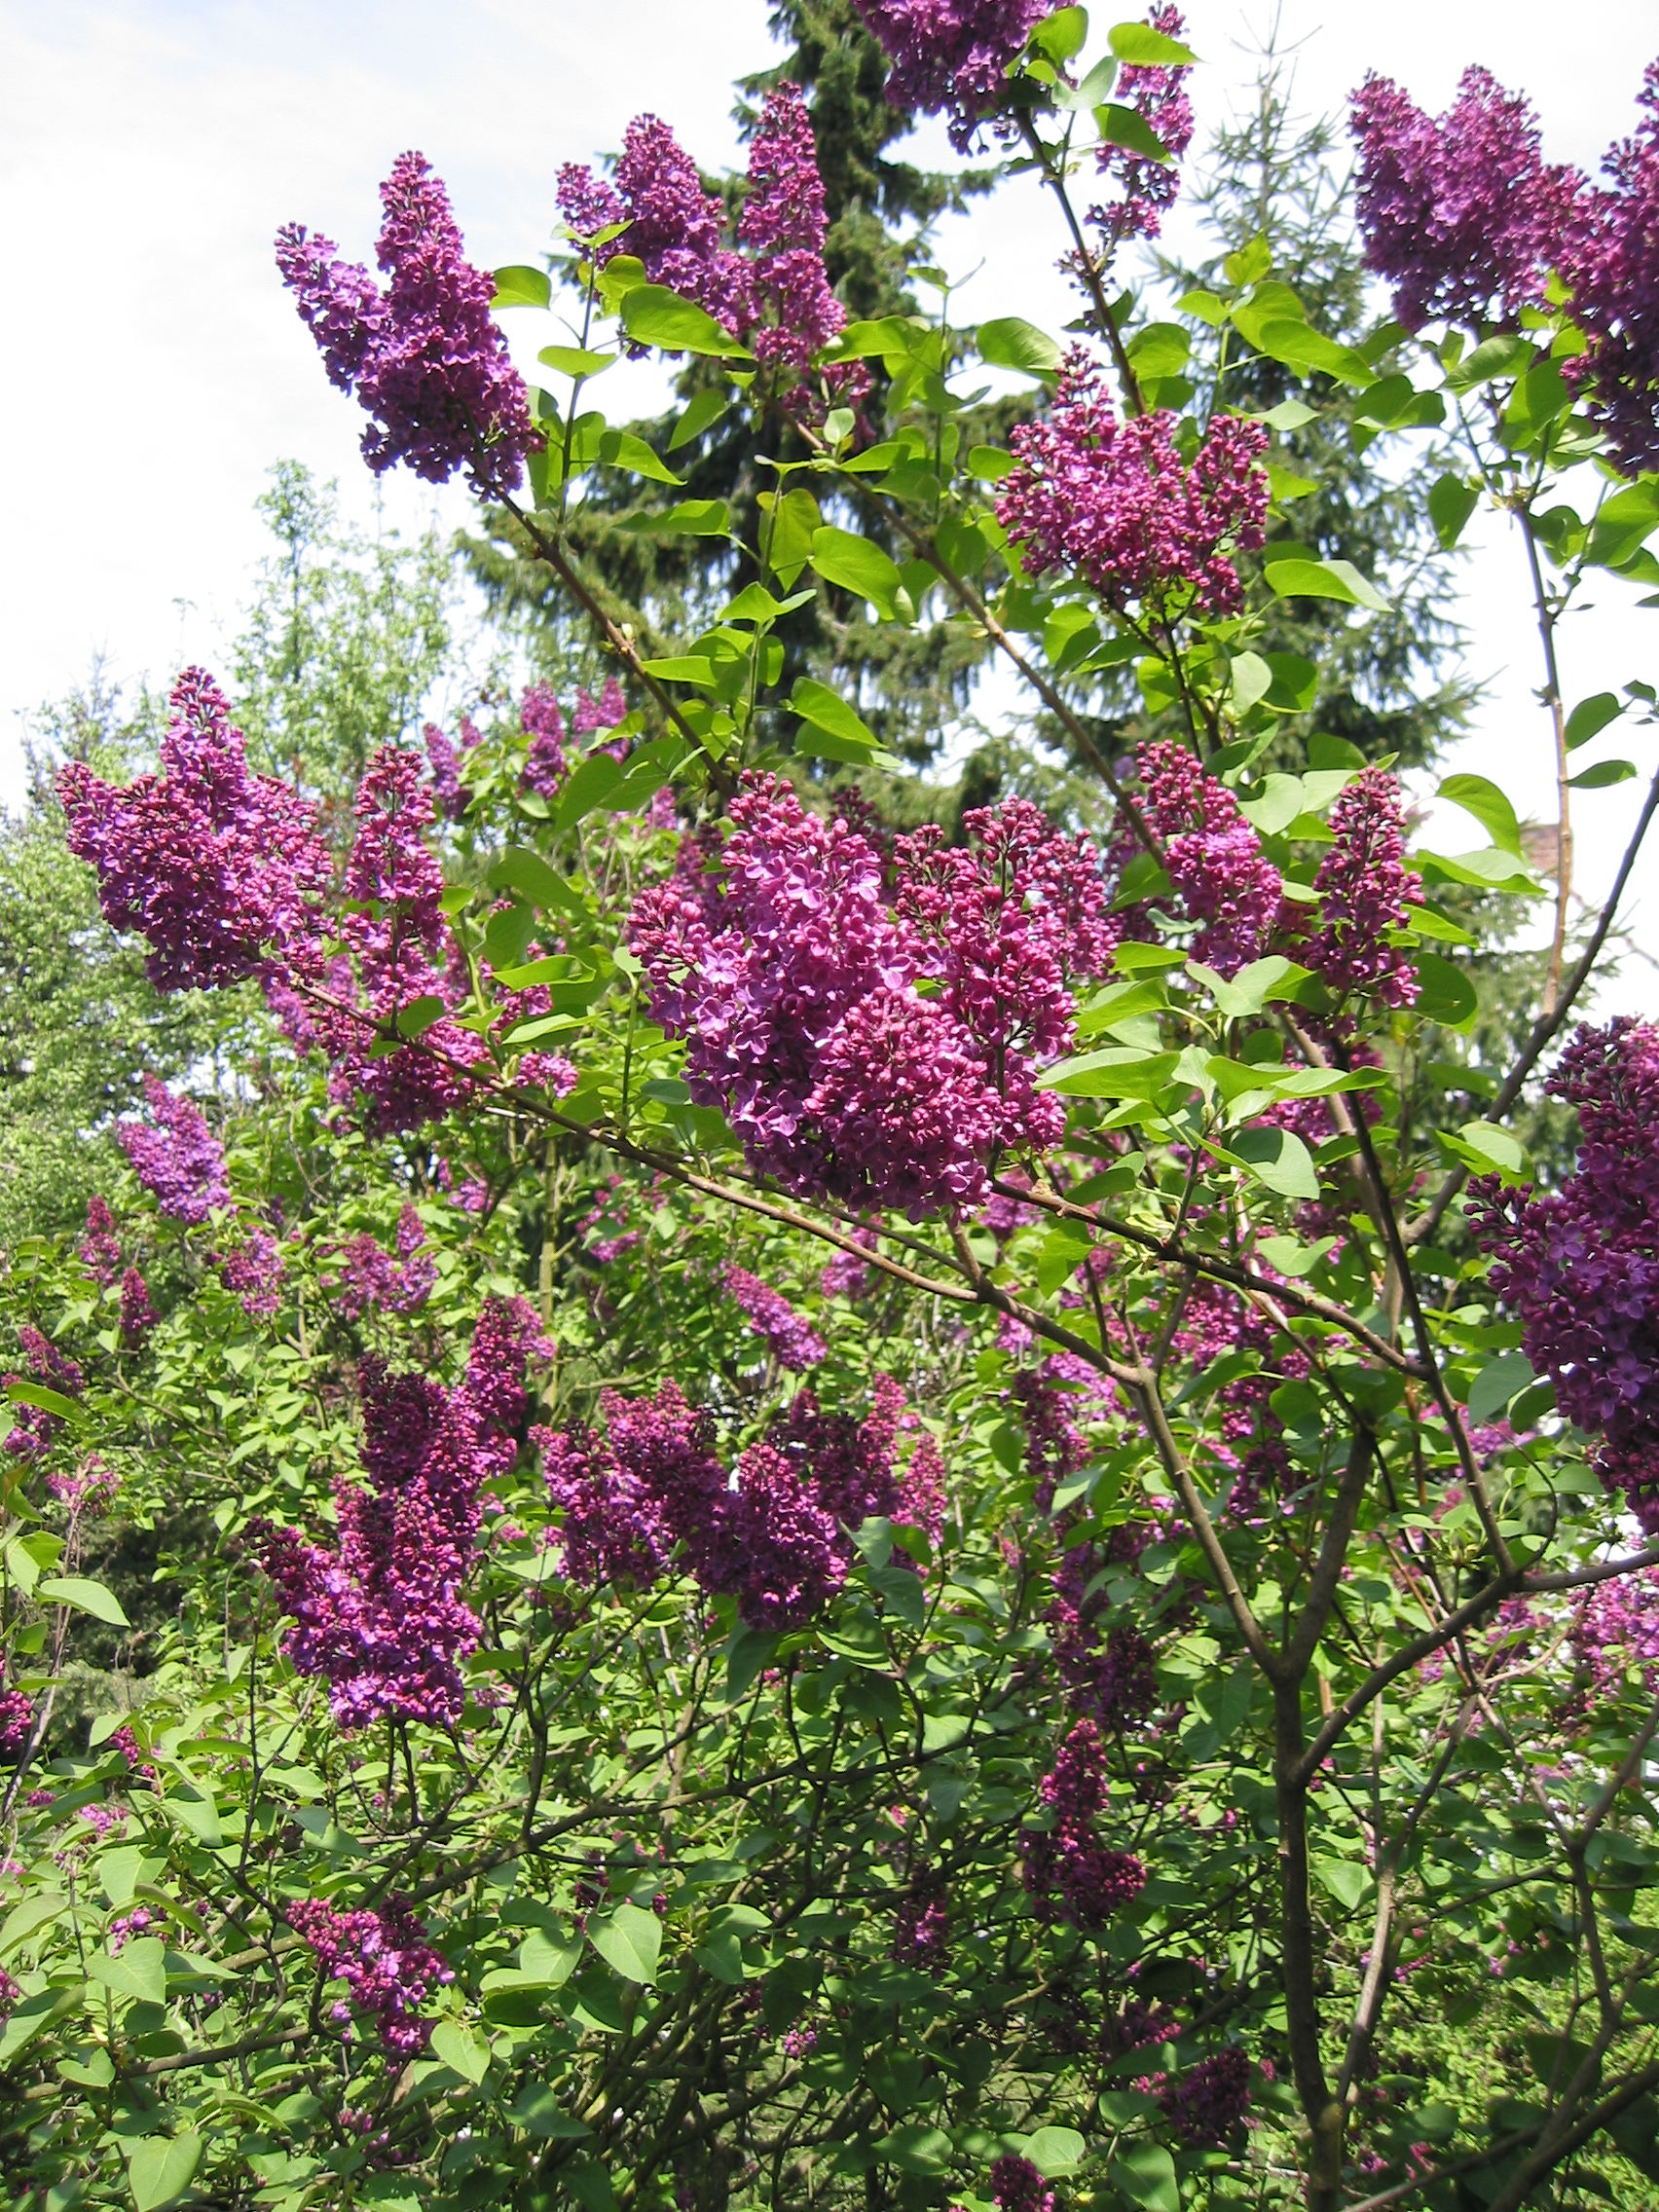 File:Lilac (2).jpg - Wikimedia Commons